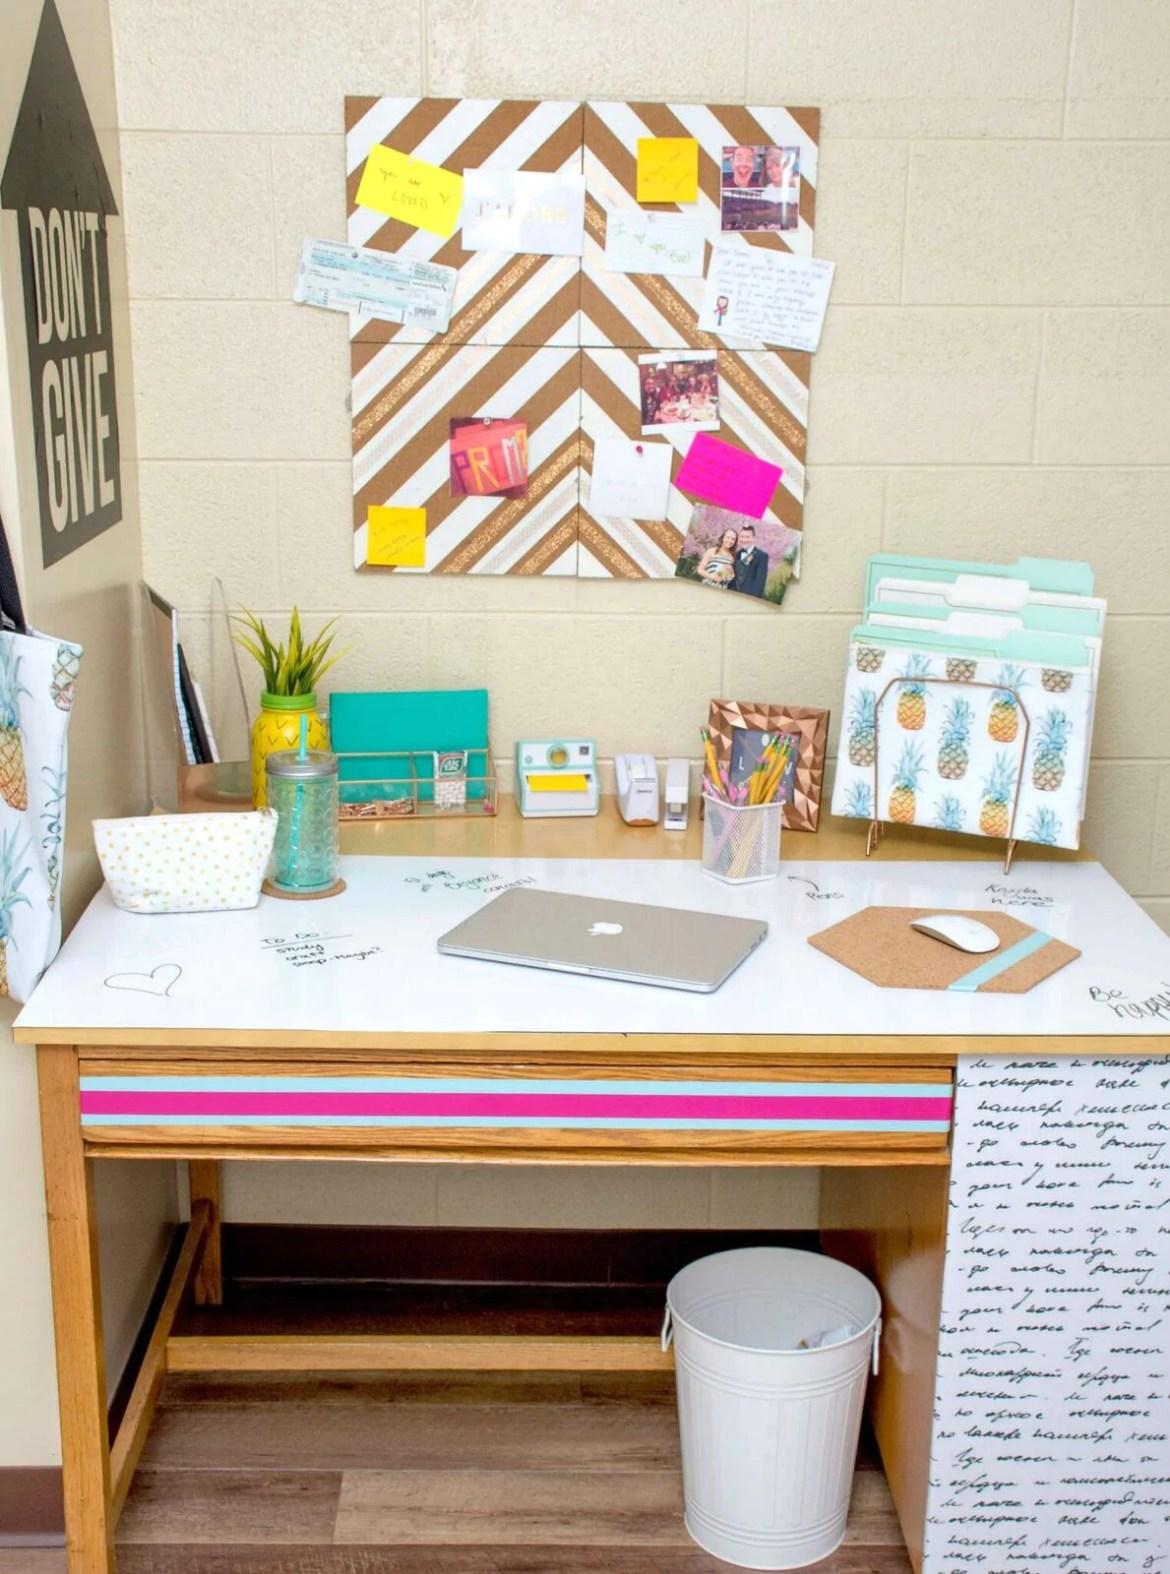 Dorm Takeover: Create a relaxing and organized work space. Have a boring desk? Add some removable wallpaper and decals to keep you inspired and on track! The fun handwriting wallpaper is from WallsNeedLove!